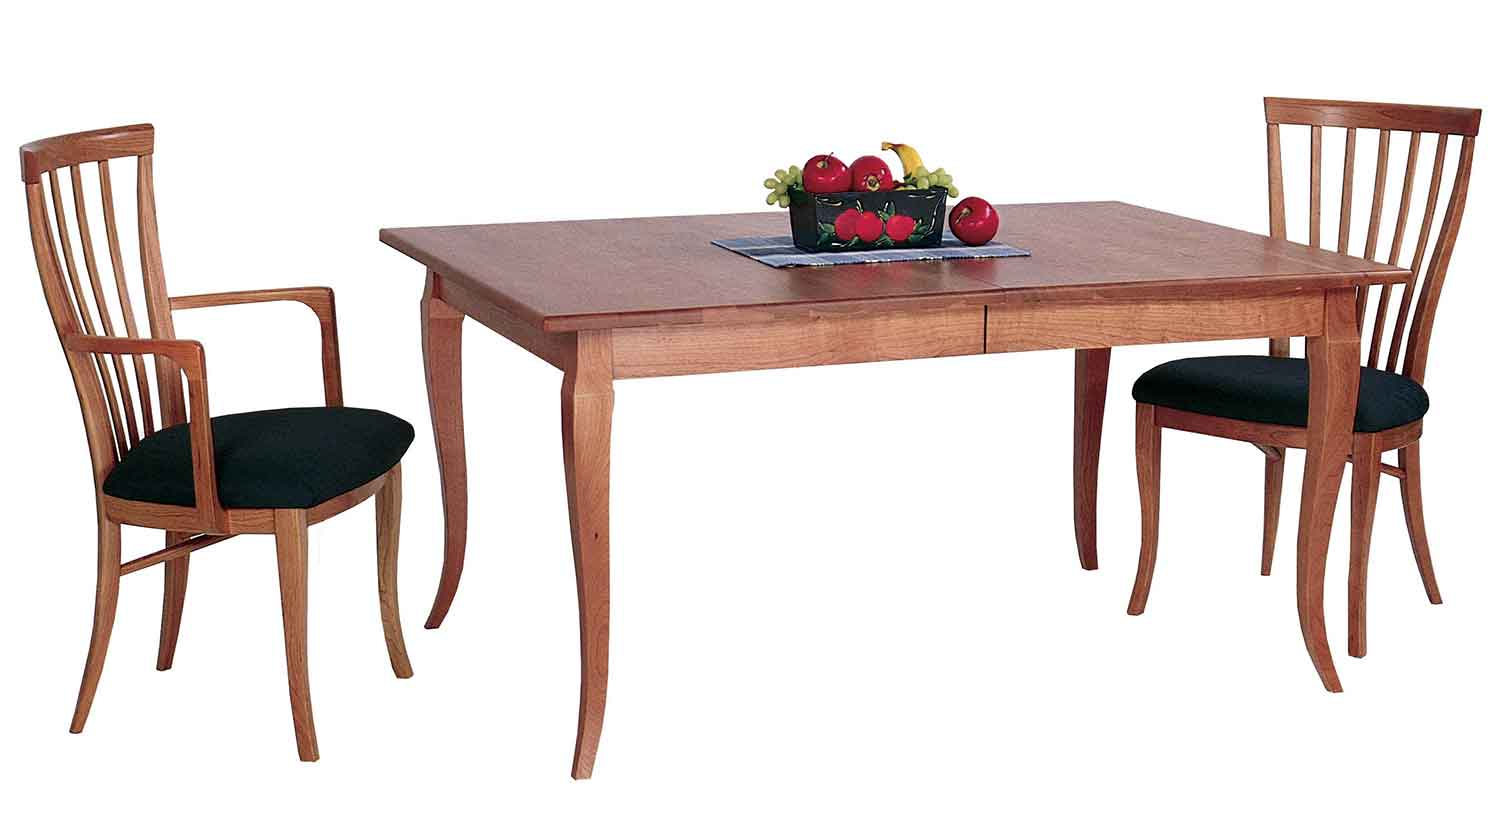 Circle furniture french country table designer dining for Country dining table with bench